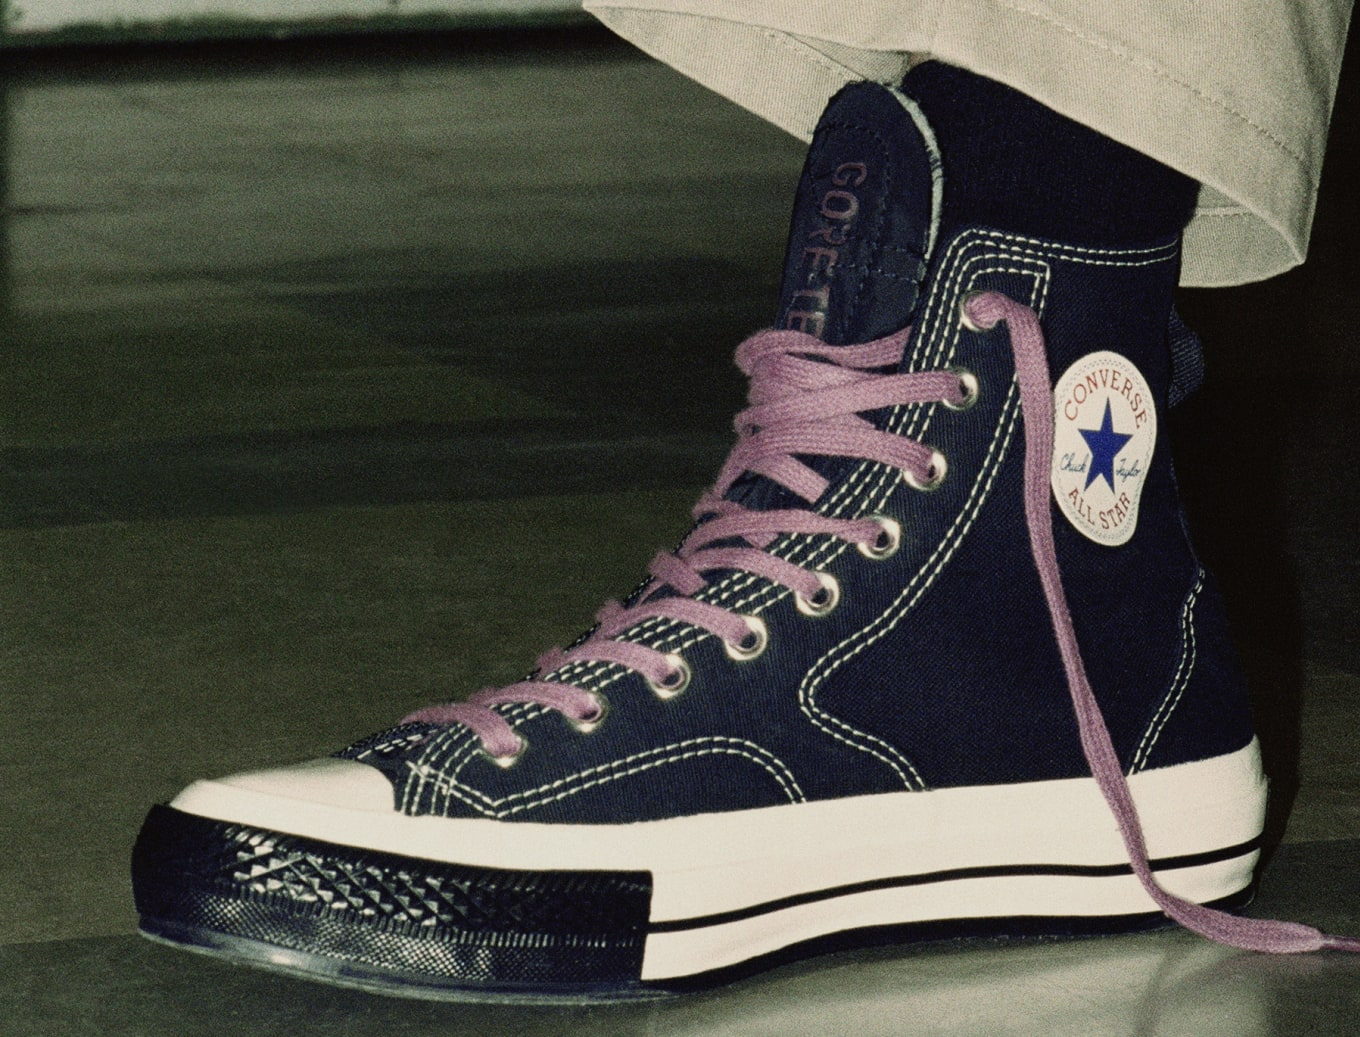 f1a522c6b649 Converse x Slam Jam x Cali Thornhill Dewitt Urban Utility Collection ...